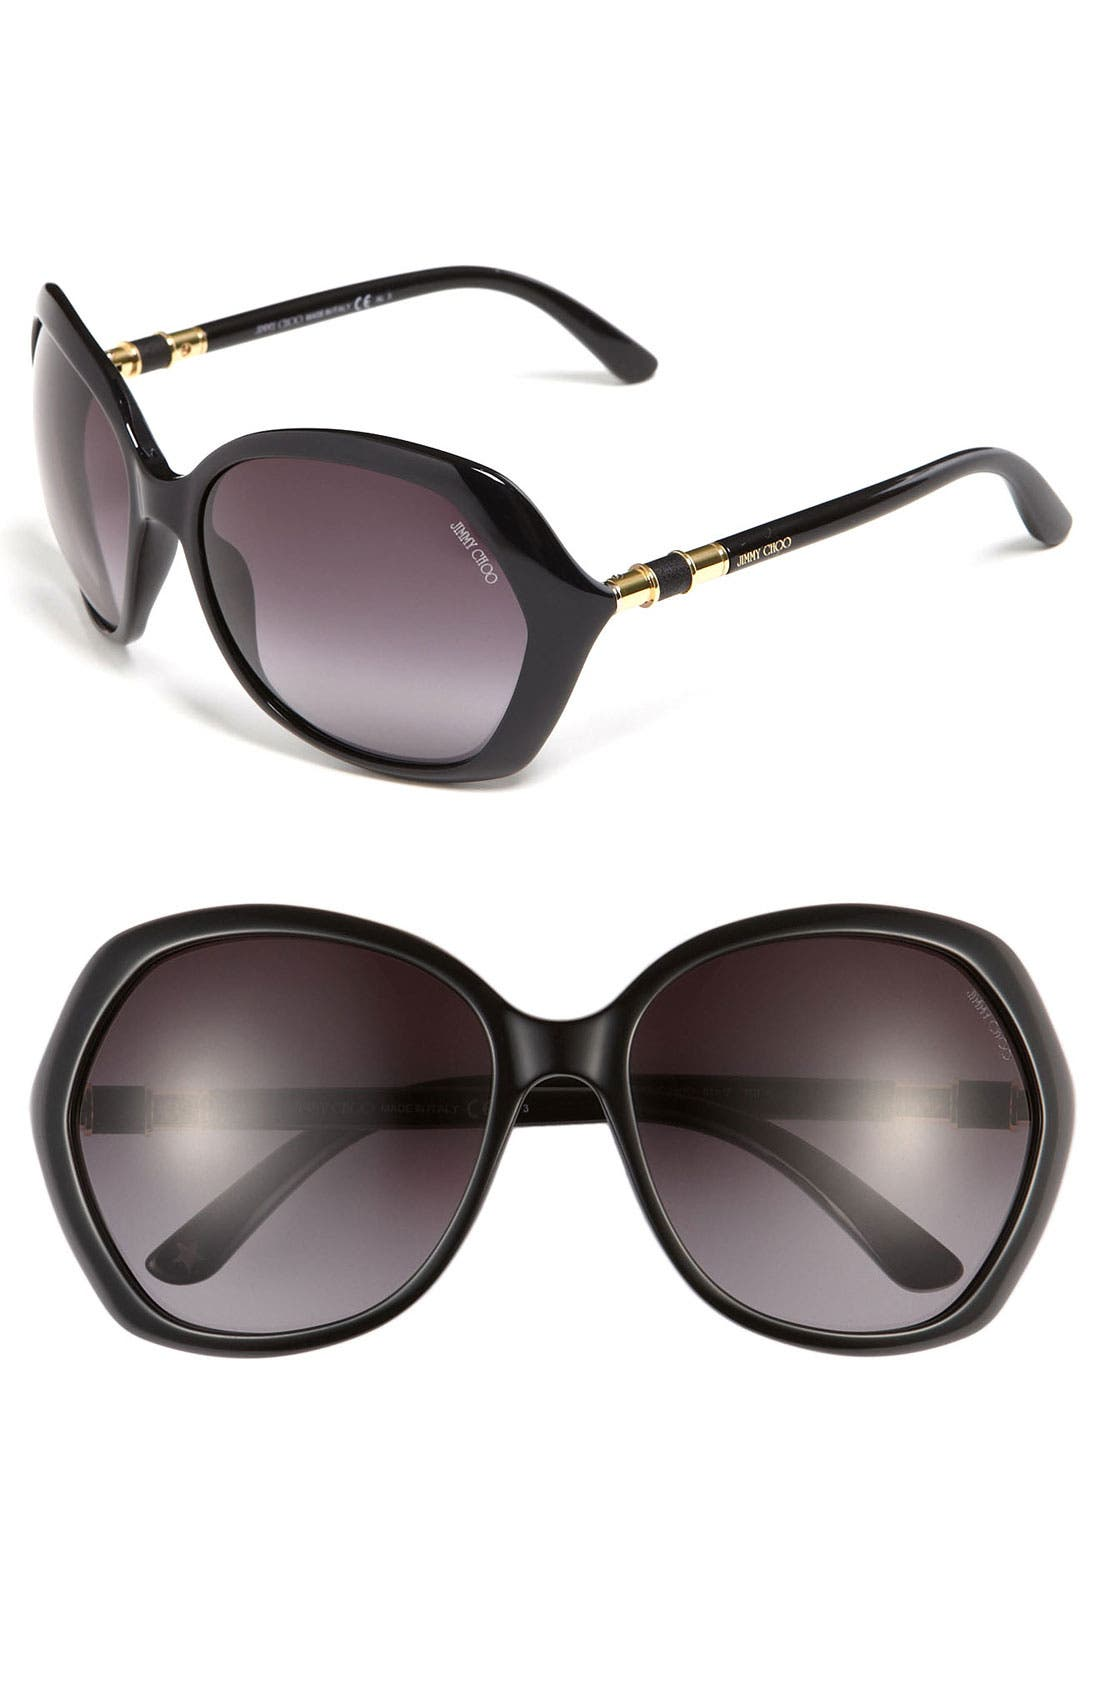 Main Image - Jimmy Choo 'Justine' Oversized Sunglasses